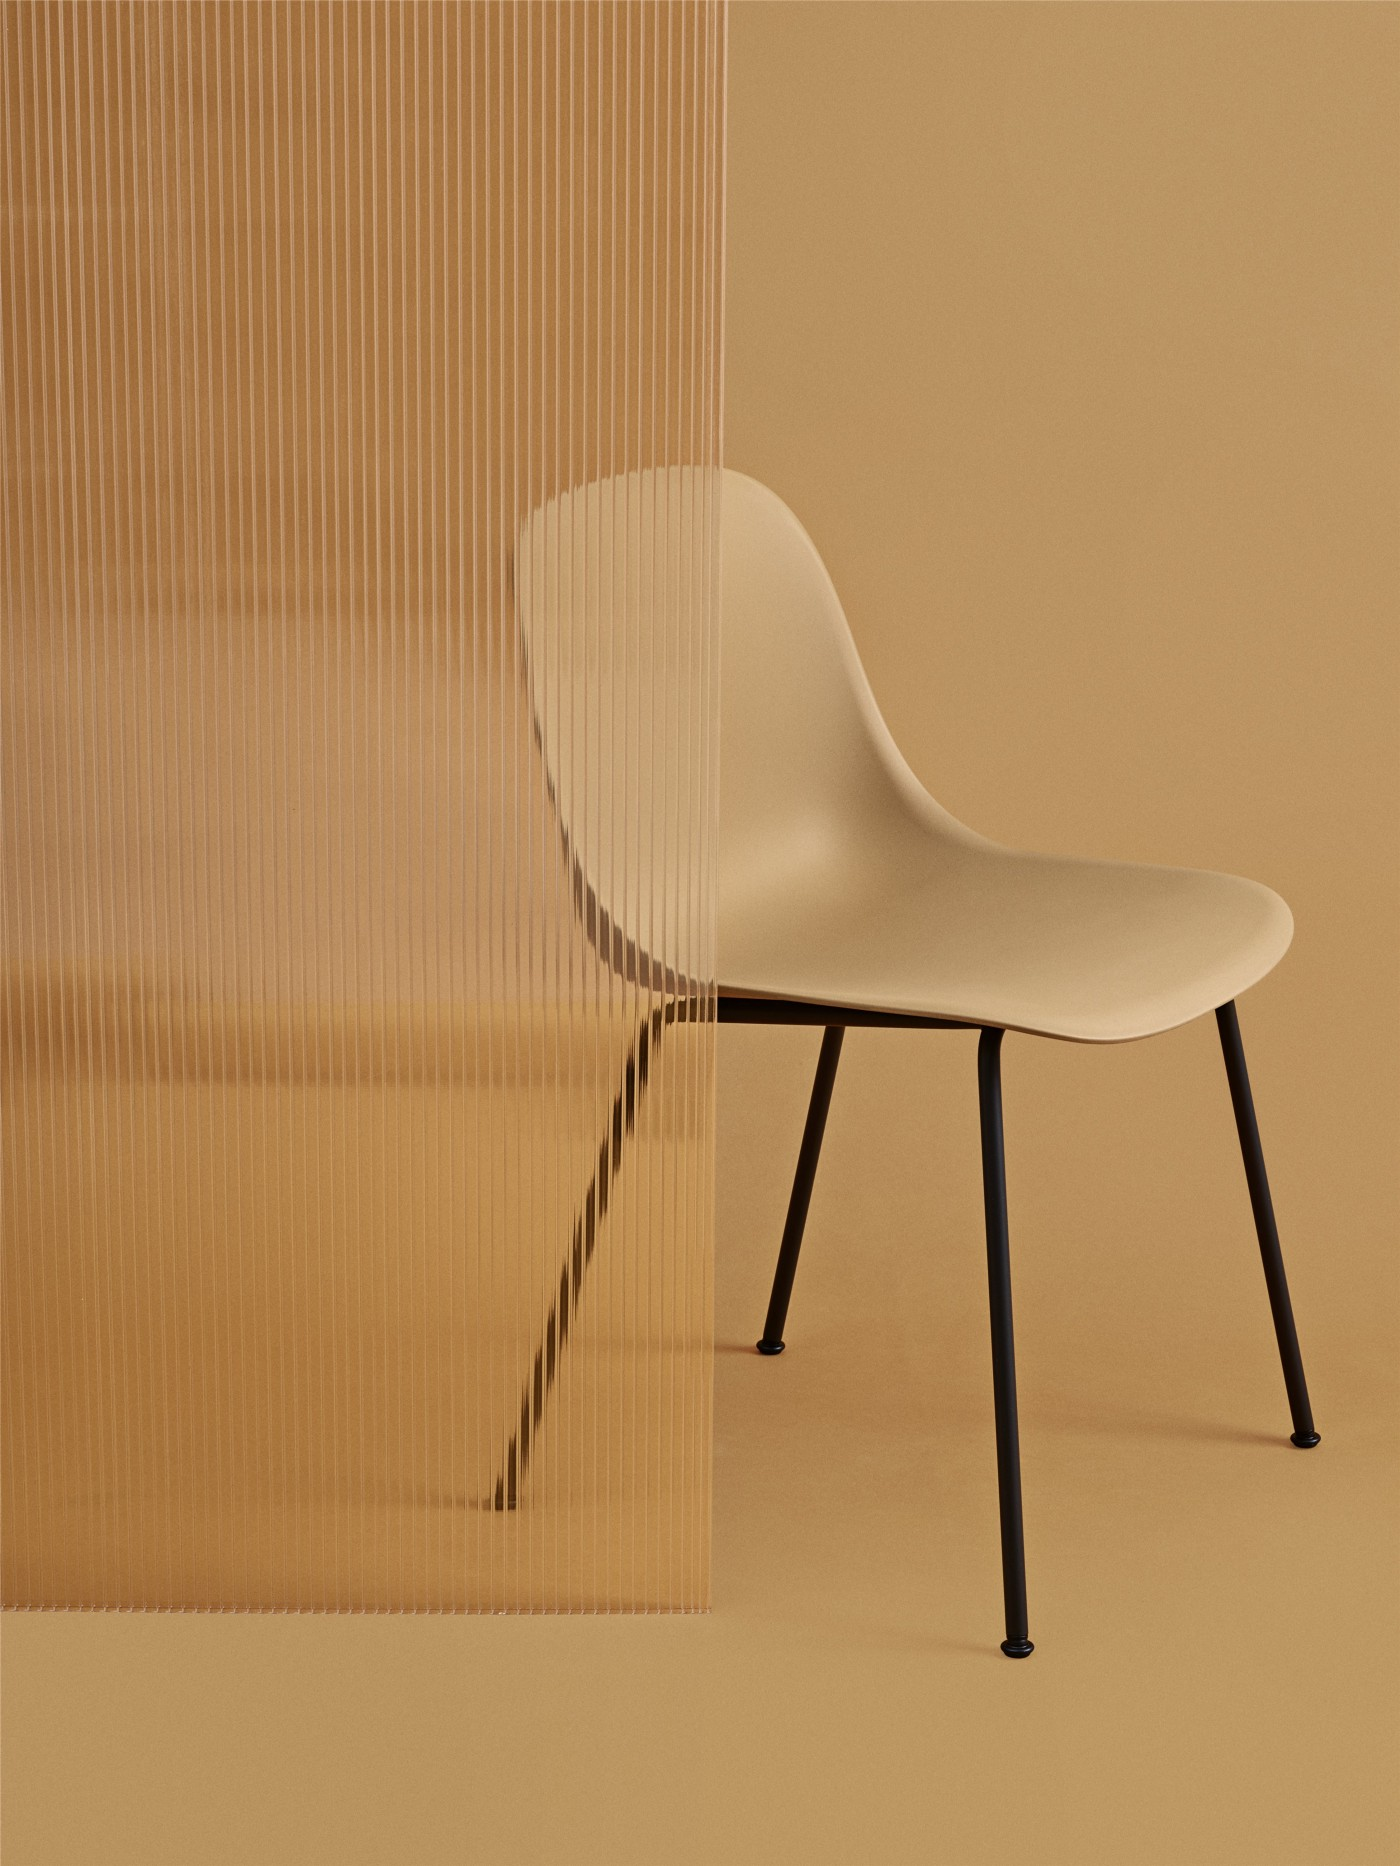 Contemporary, Danish dining chair in ochre finish with black metal legs.